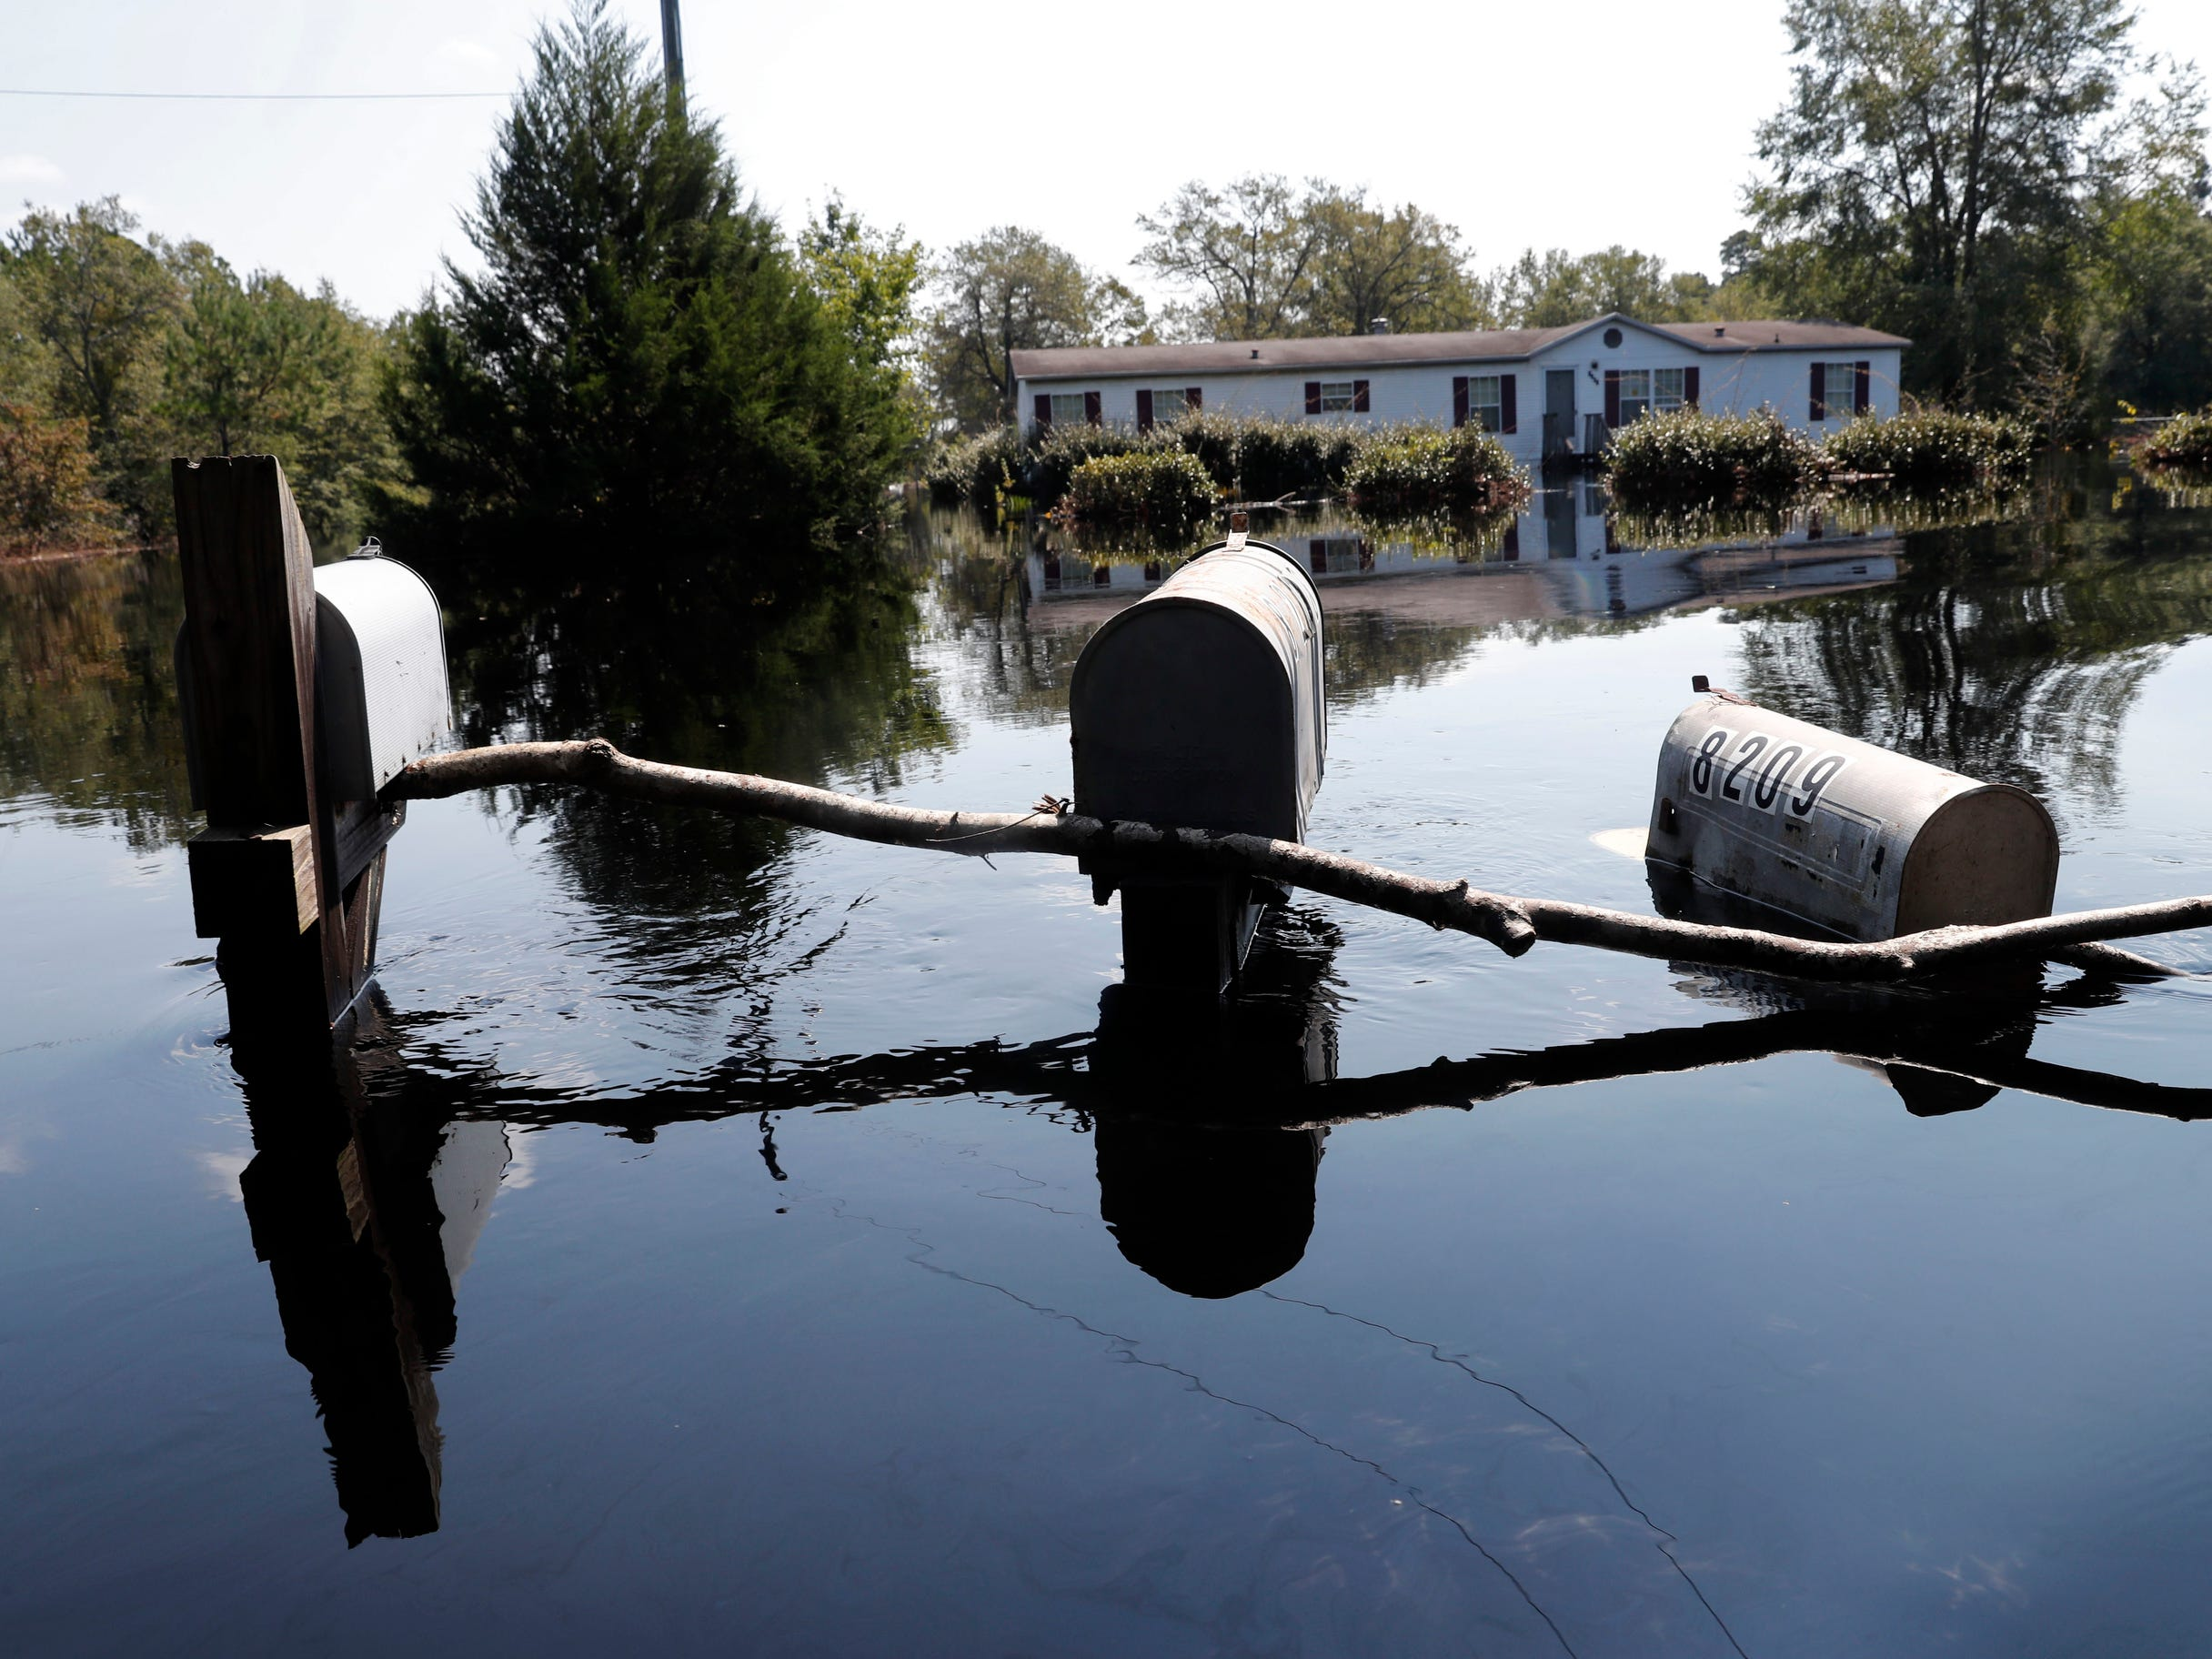 Rows of mailbox protrude through floodwaters in the aftermath of Hurricane Florence in Nichols, S.C., Friday, Sept. 21, 2018. Virtually the entire town is flooded and inaccessible except by boat, just two years after it was flooded by Hurricane Matthew.